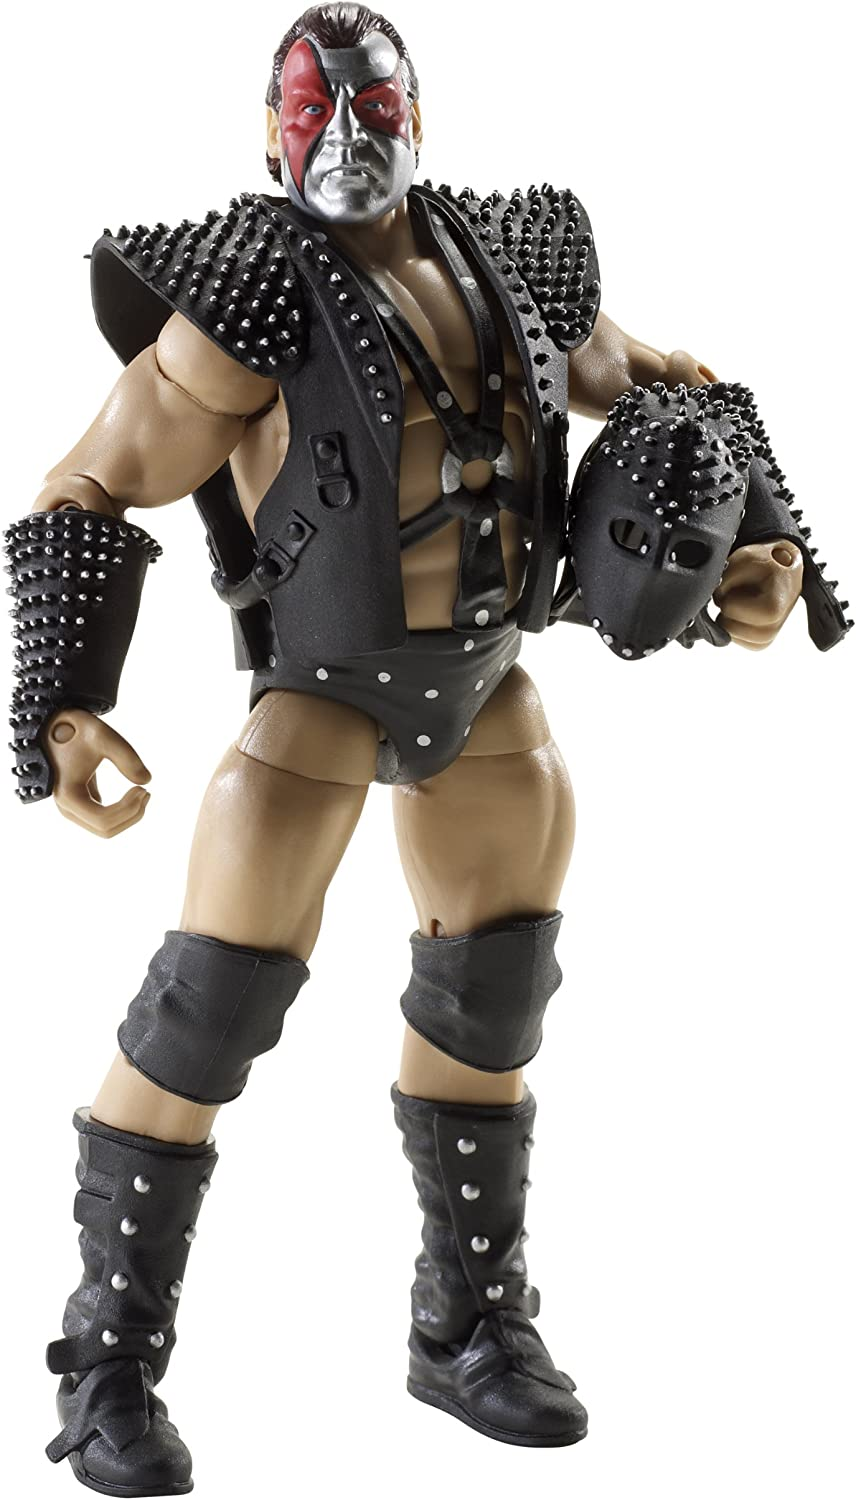 Ax Figur - Demolition - WWE Legends 4